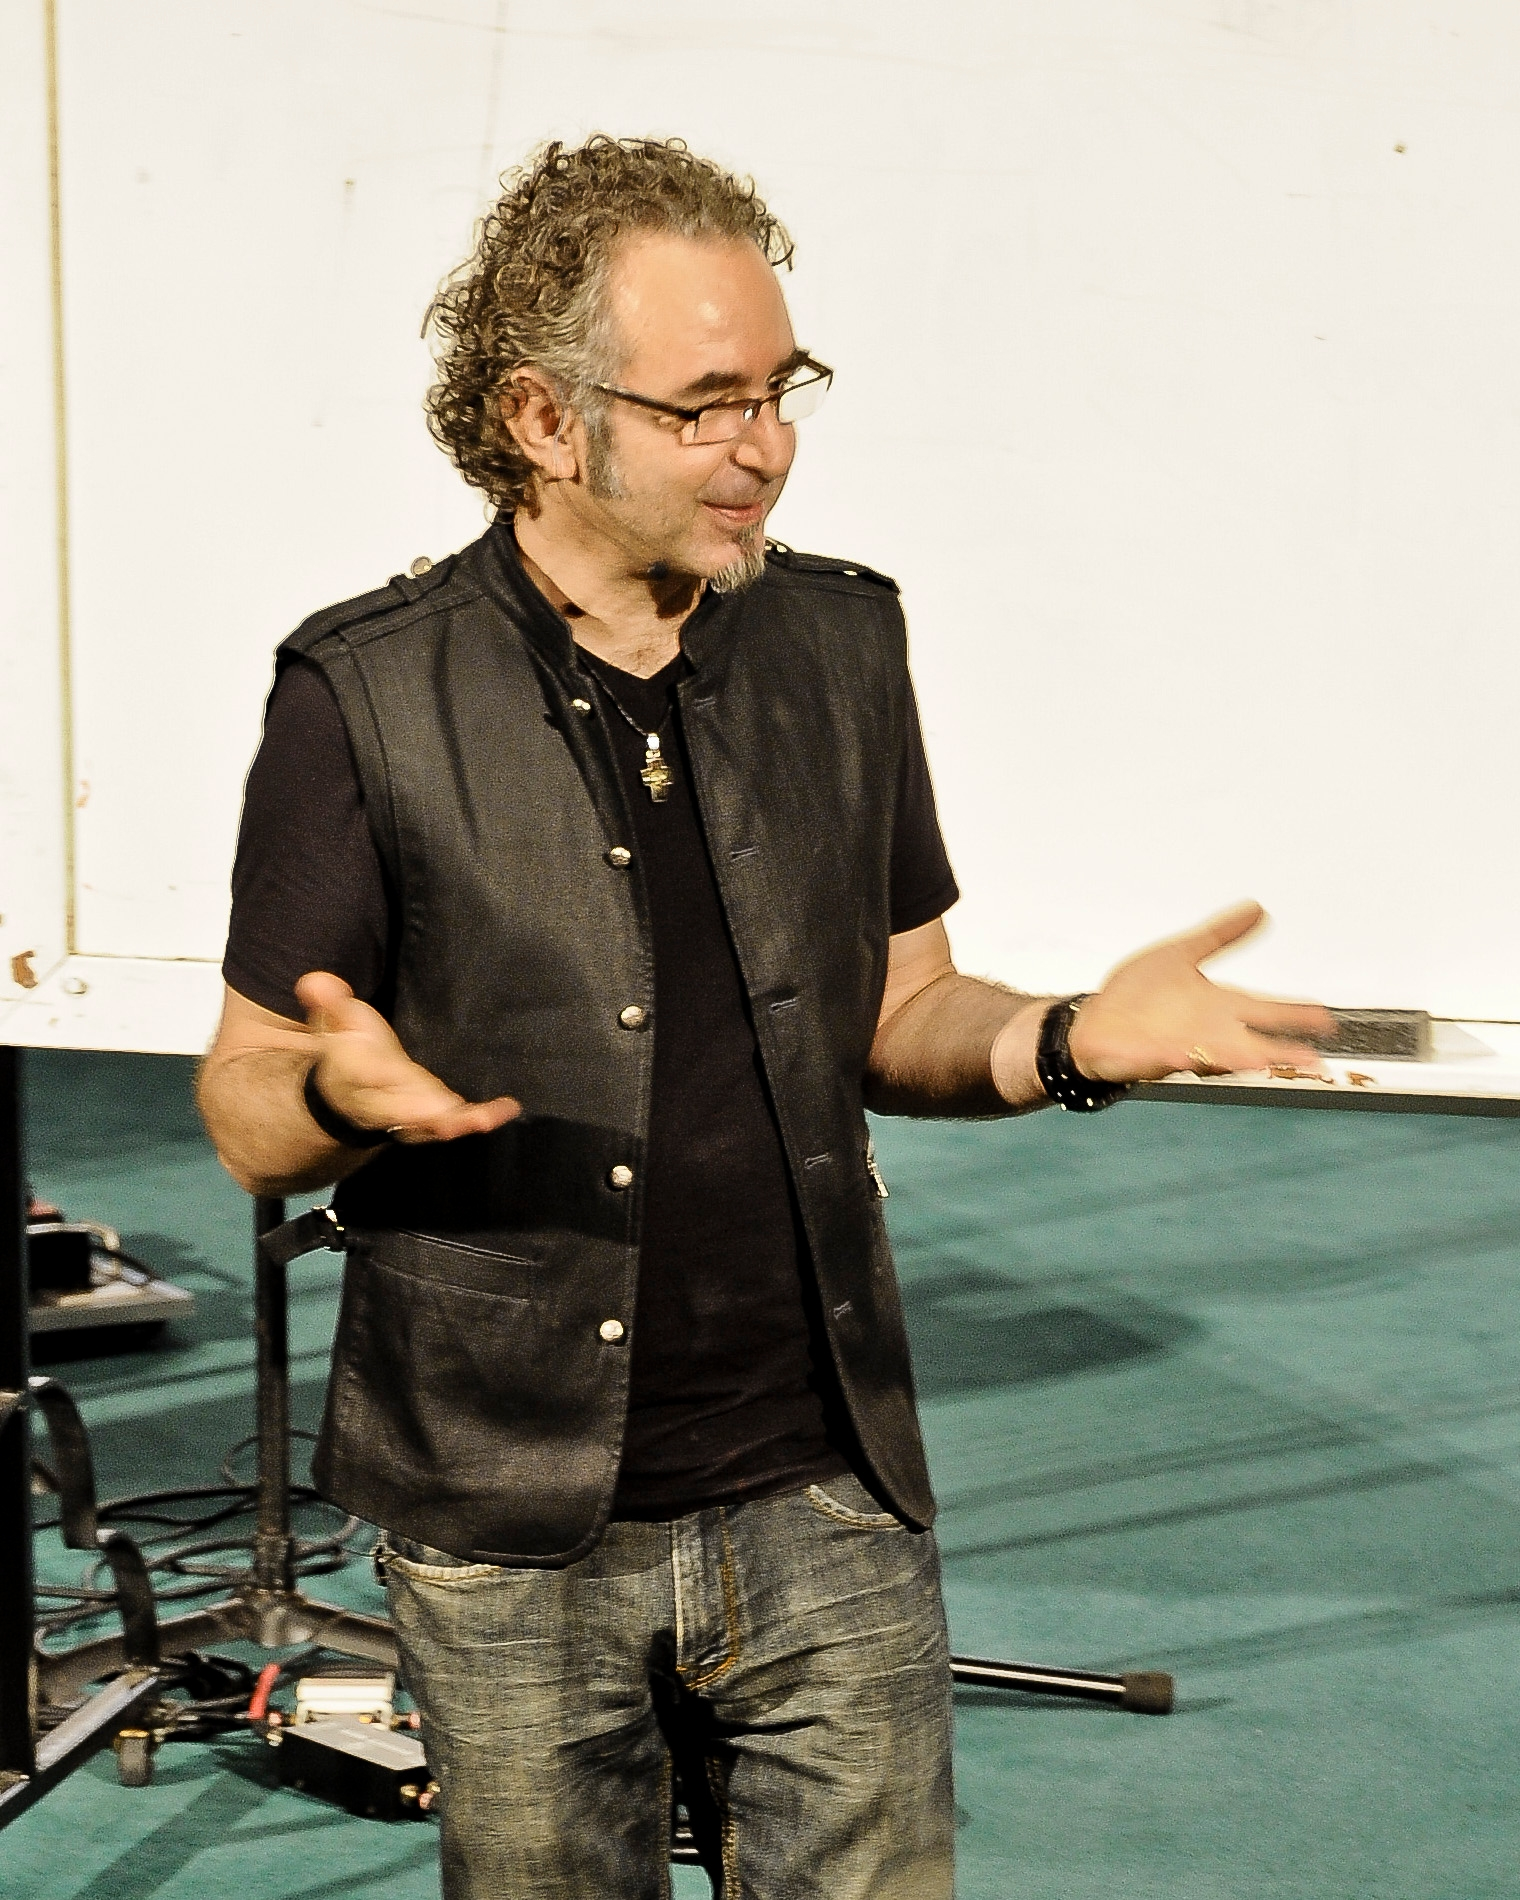 ALAN HIRSCH - Alan Hirsch is the founding director of Forge Mission Training Network. Currently co-leads Future Travelers, an innovative learning program helping megachurches become missional movements. Known for his innovative approach to mission, Alan is highly sought after thought-leader and key mission strategist for churches across the Western world. He is the author of numerous award winning books including The Forgotten Ways, The Shaping of Things to Come, The Permanent Revolution and 5Q. He and his lovely wife Debra hail from the land down under, but currently live in Los Angeles. You can follow Alan on Twitter here.